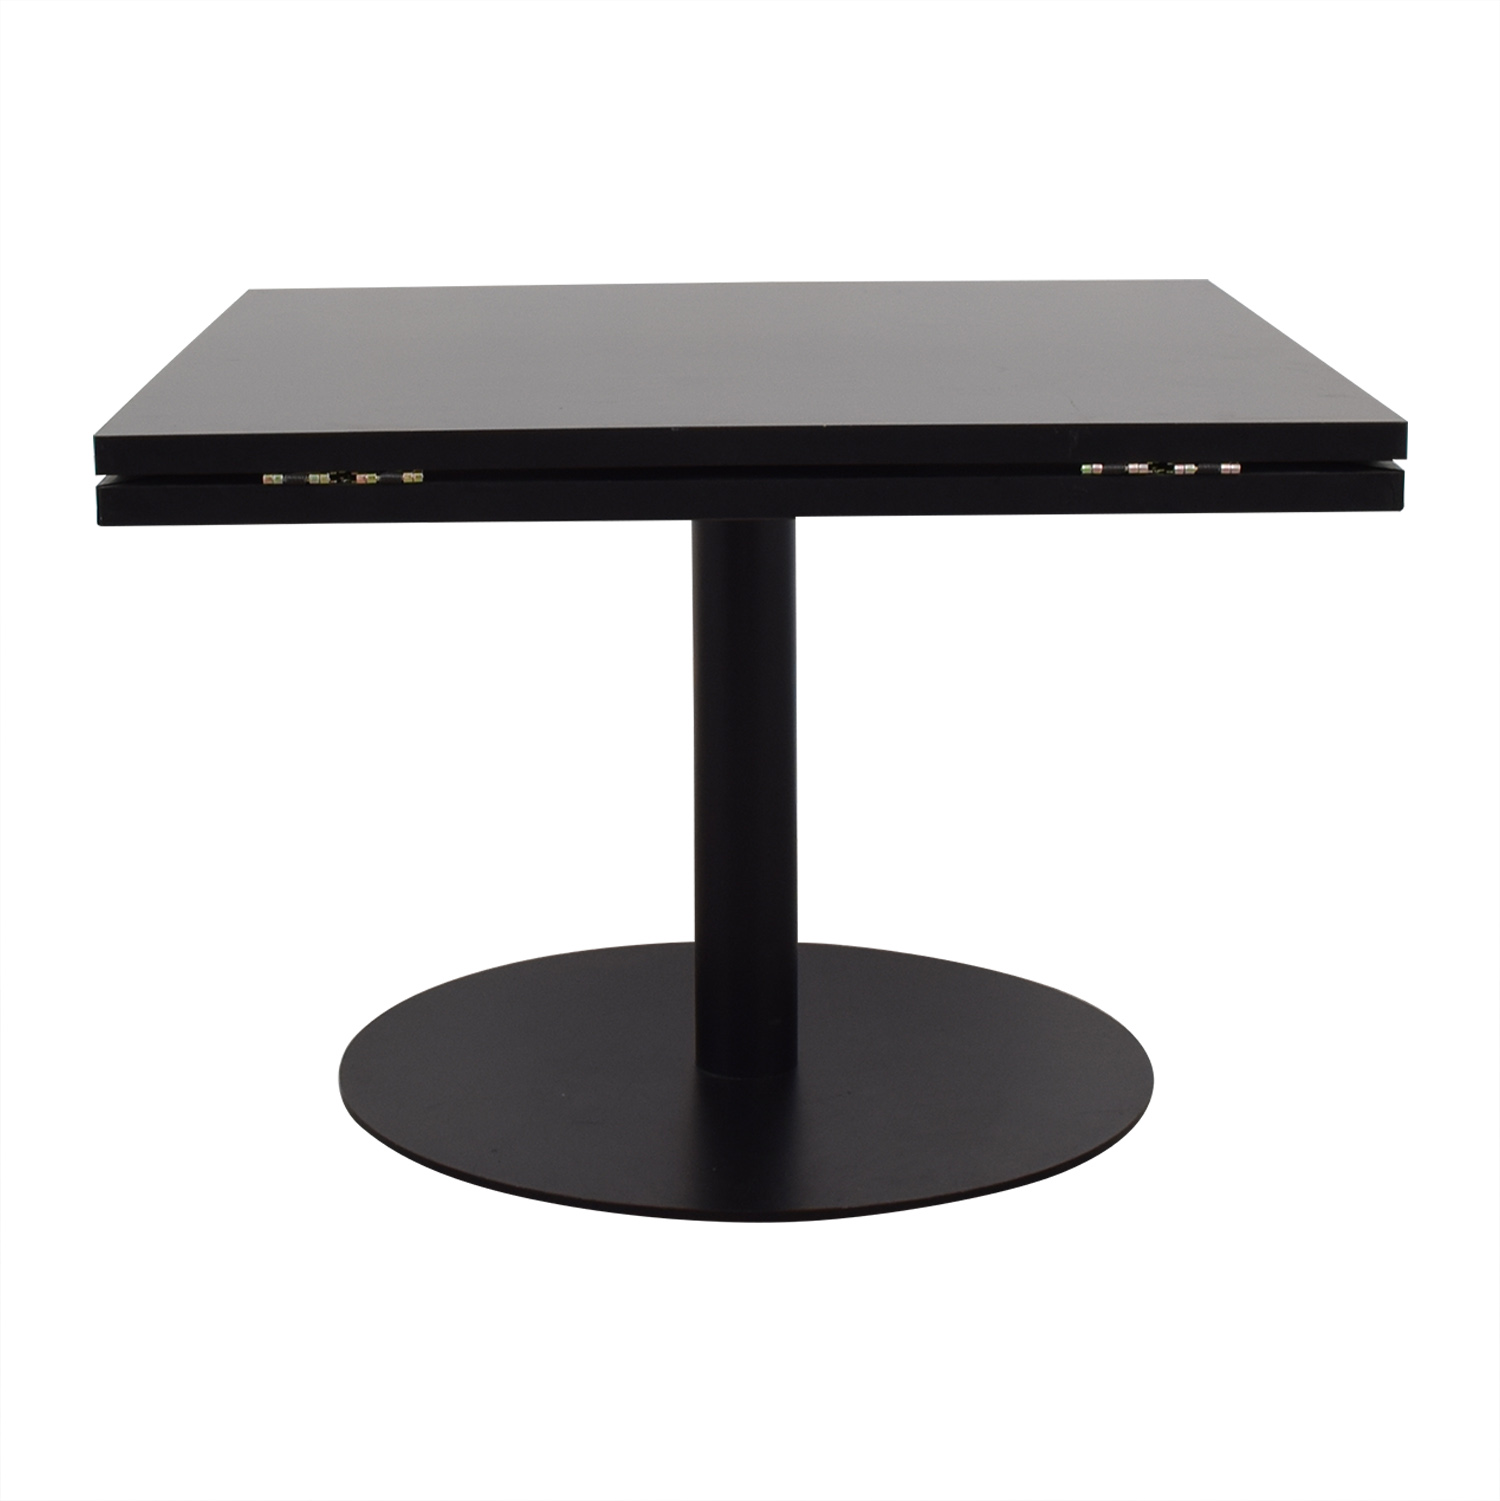 Black Square to Round Foldable Sides Table second hand